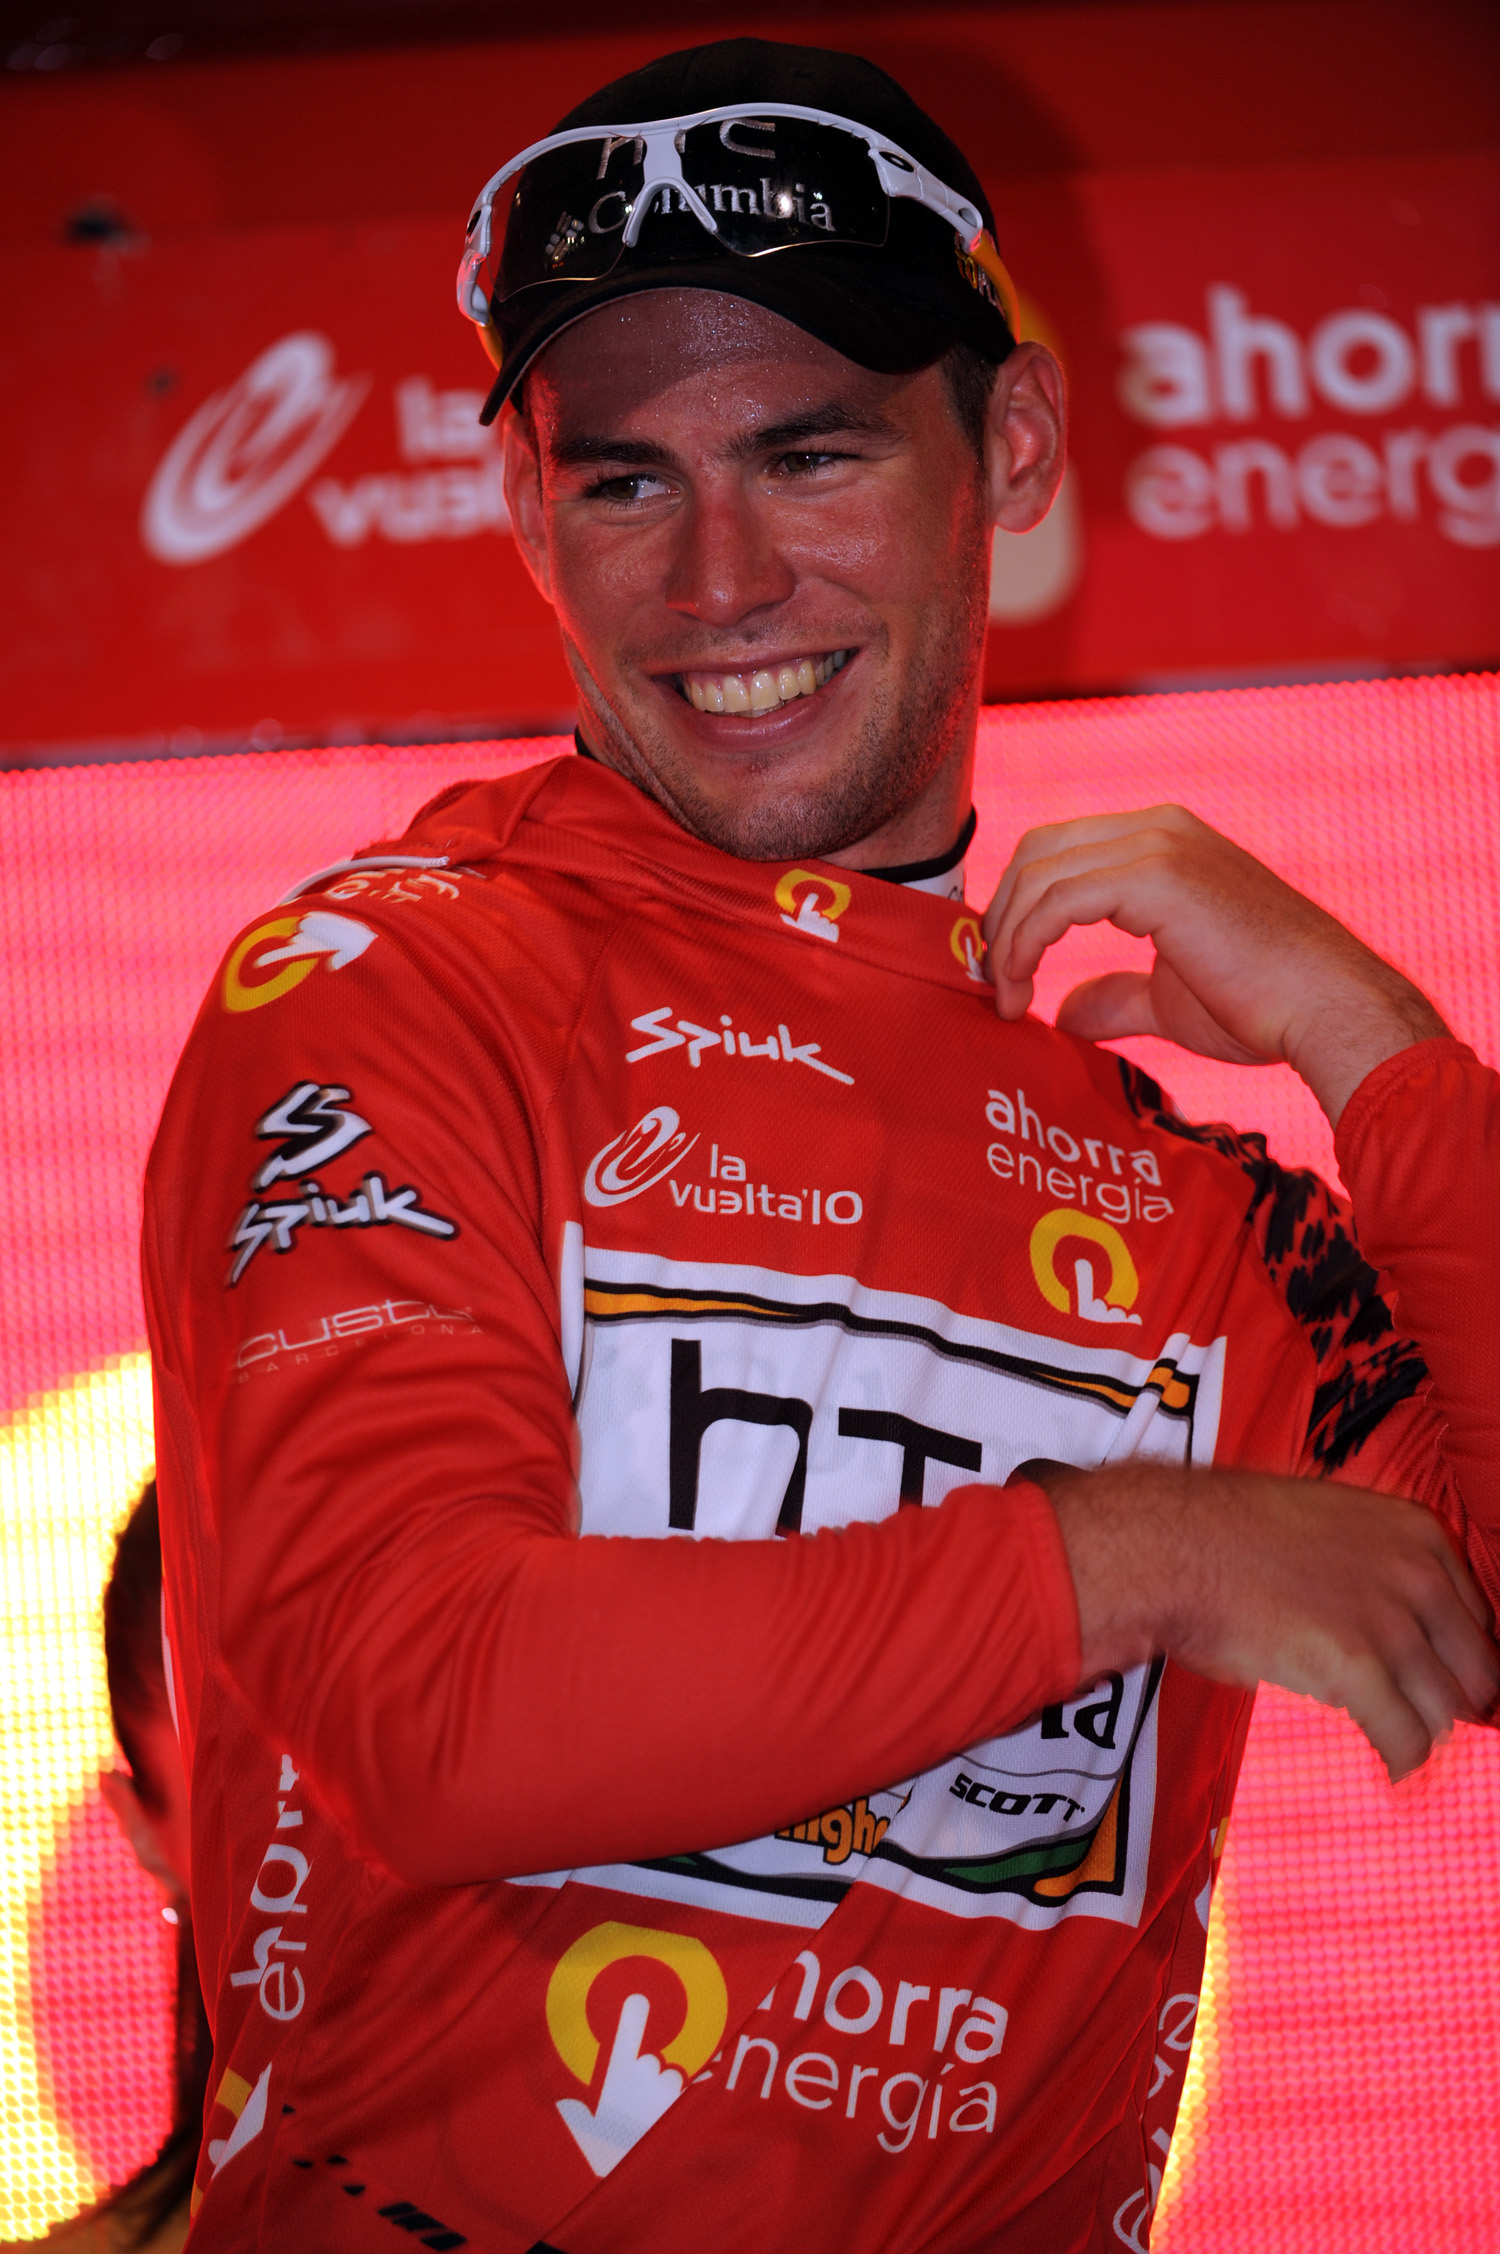 Mark Cavendish takes lead, Vuelta a Espana 2010 stage 1 TTT